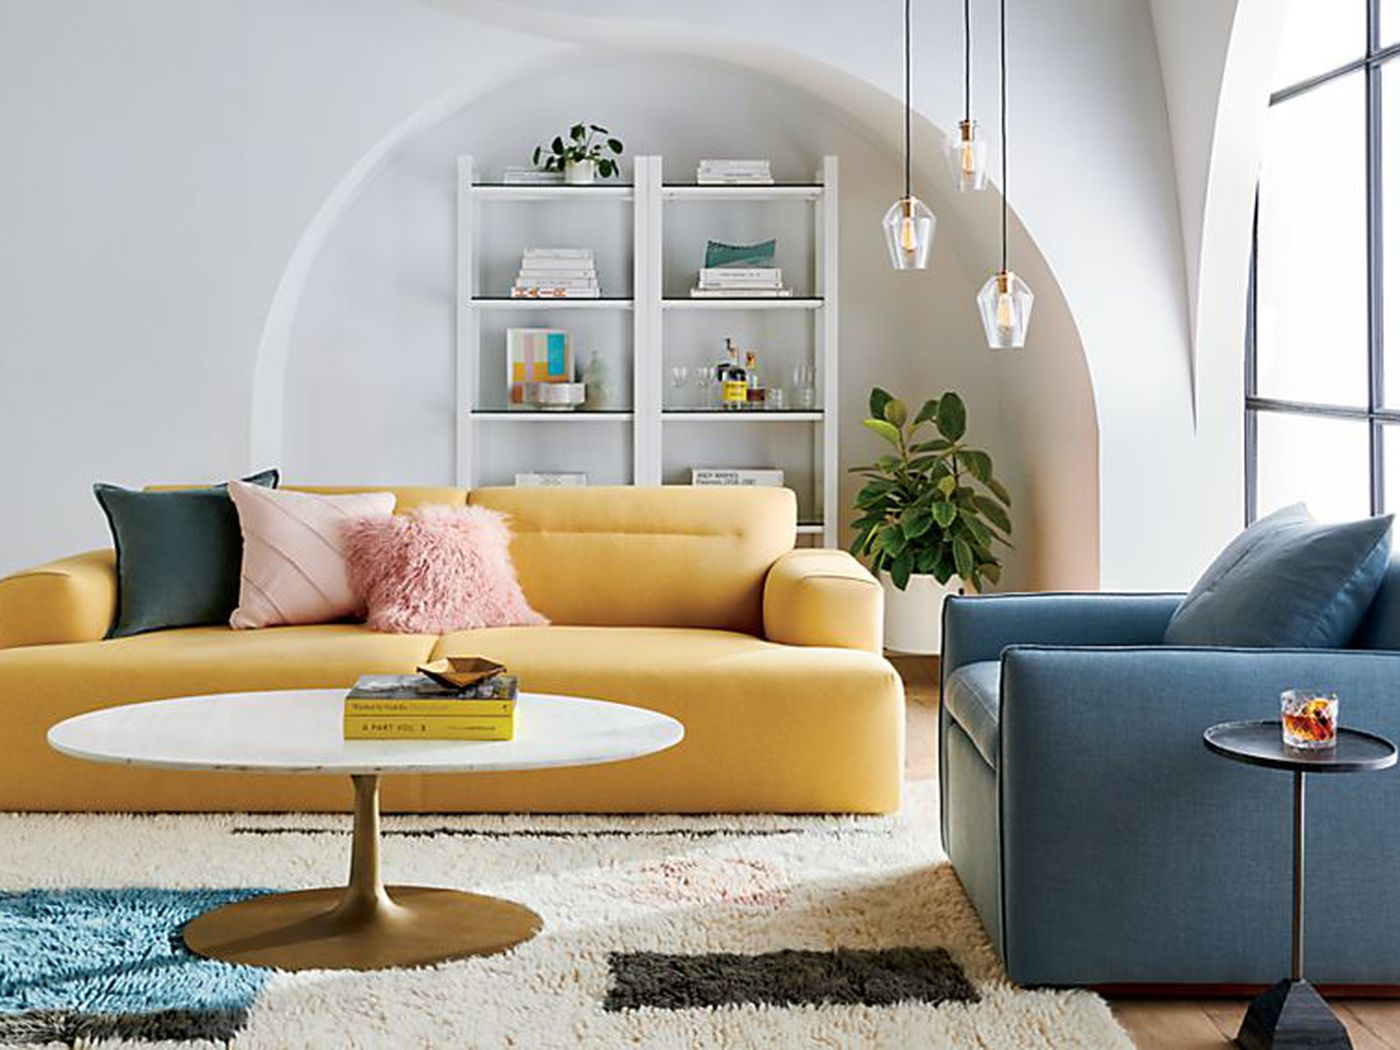 Cute furniture to buy for your home - Curbed